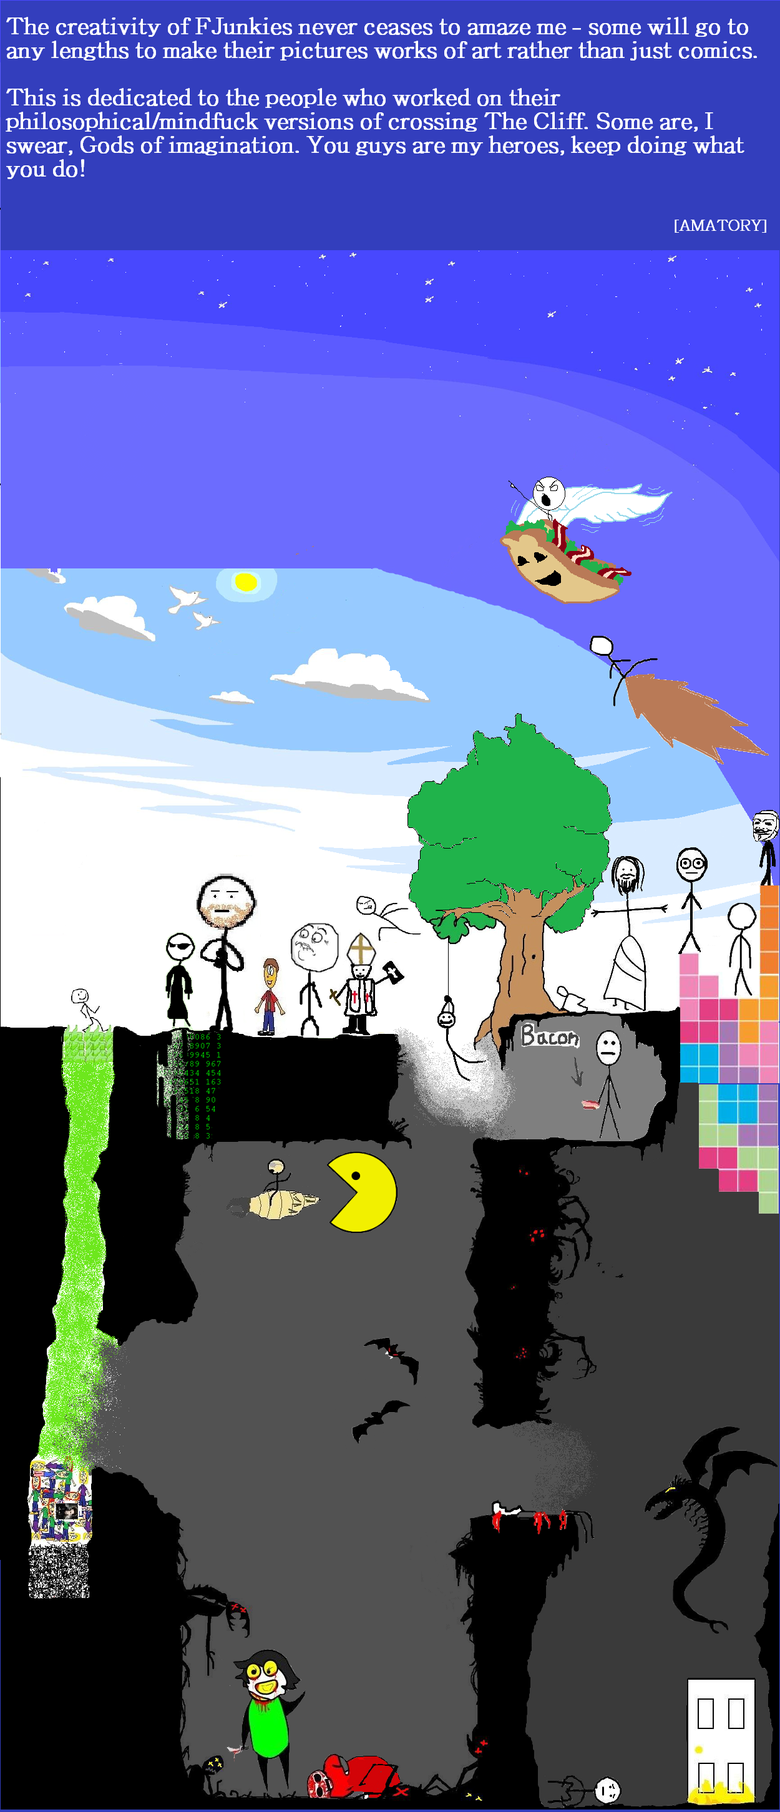 The Lengend of the Cliff Quest. I don't remember most of the usernames of the creators, but most can be recognized by their art. Thumbs up if you like what I di